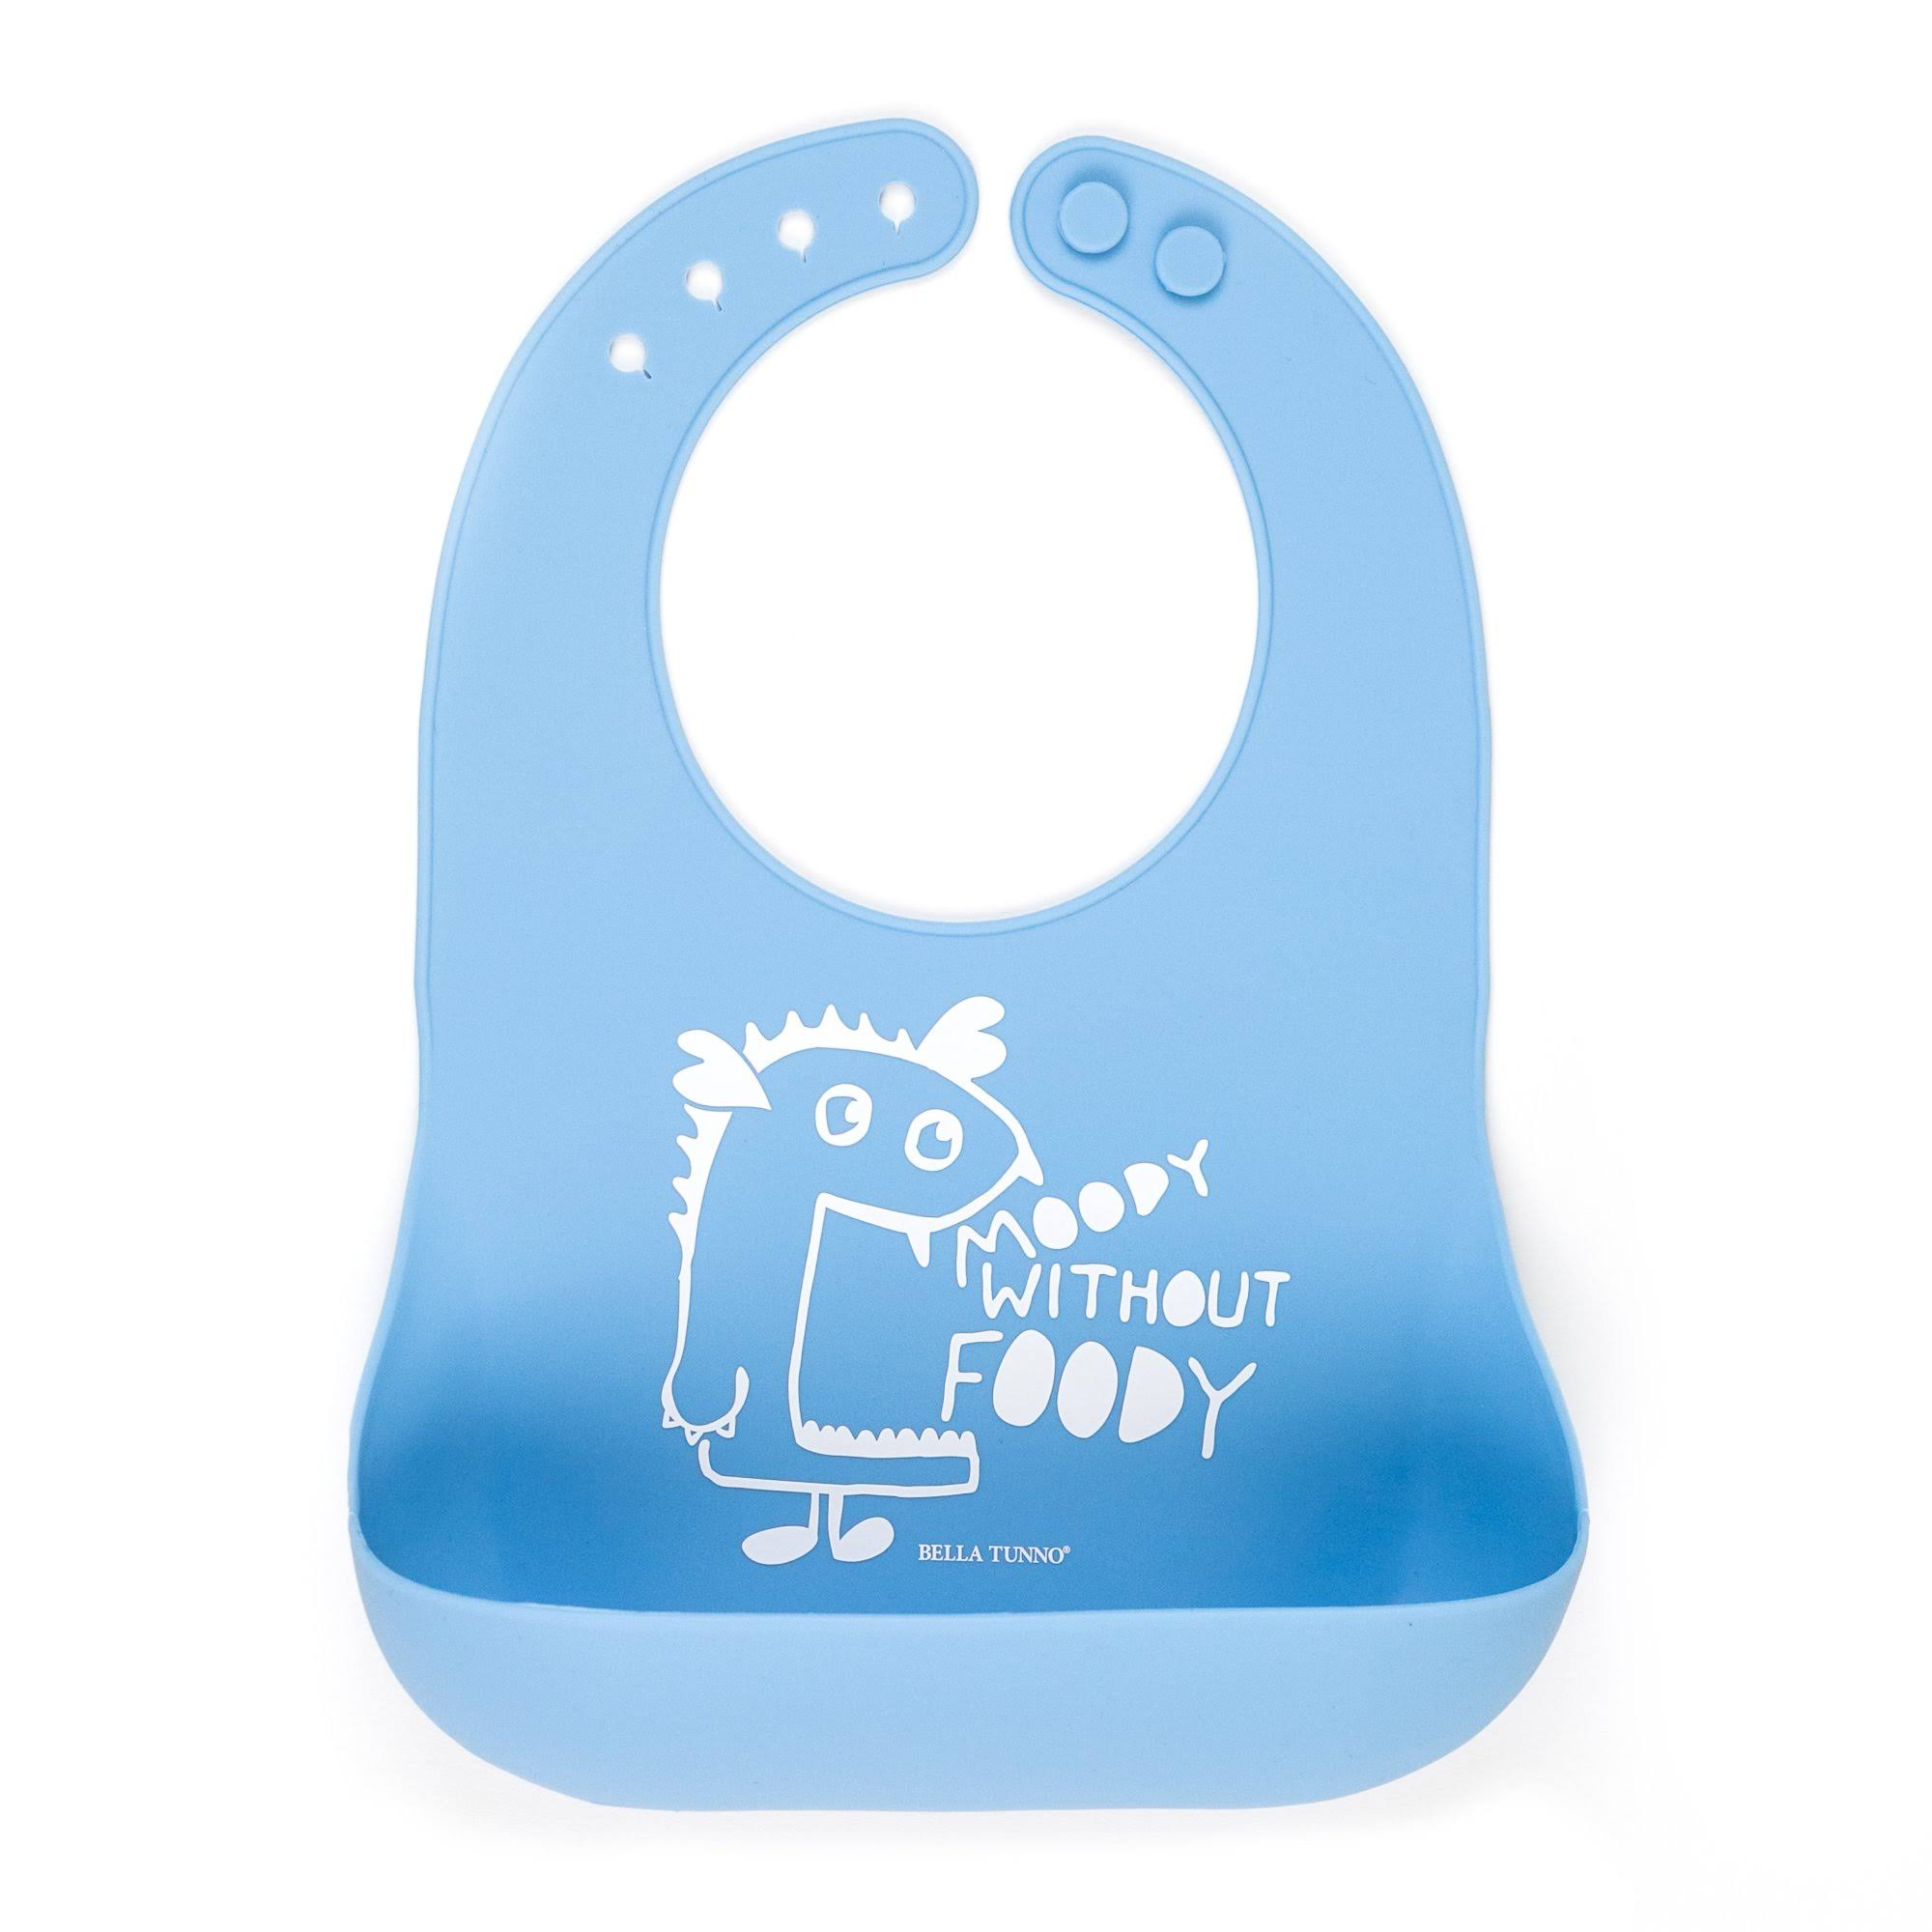 Bella Tunno Wonder Bib ::Moody without Foody